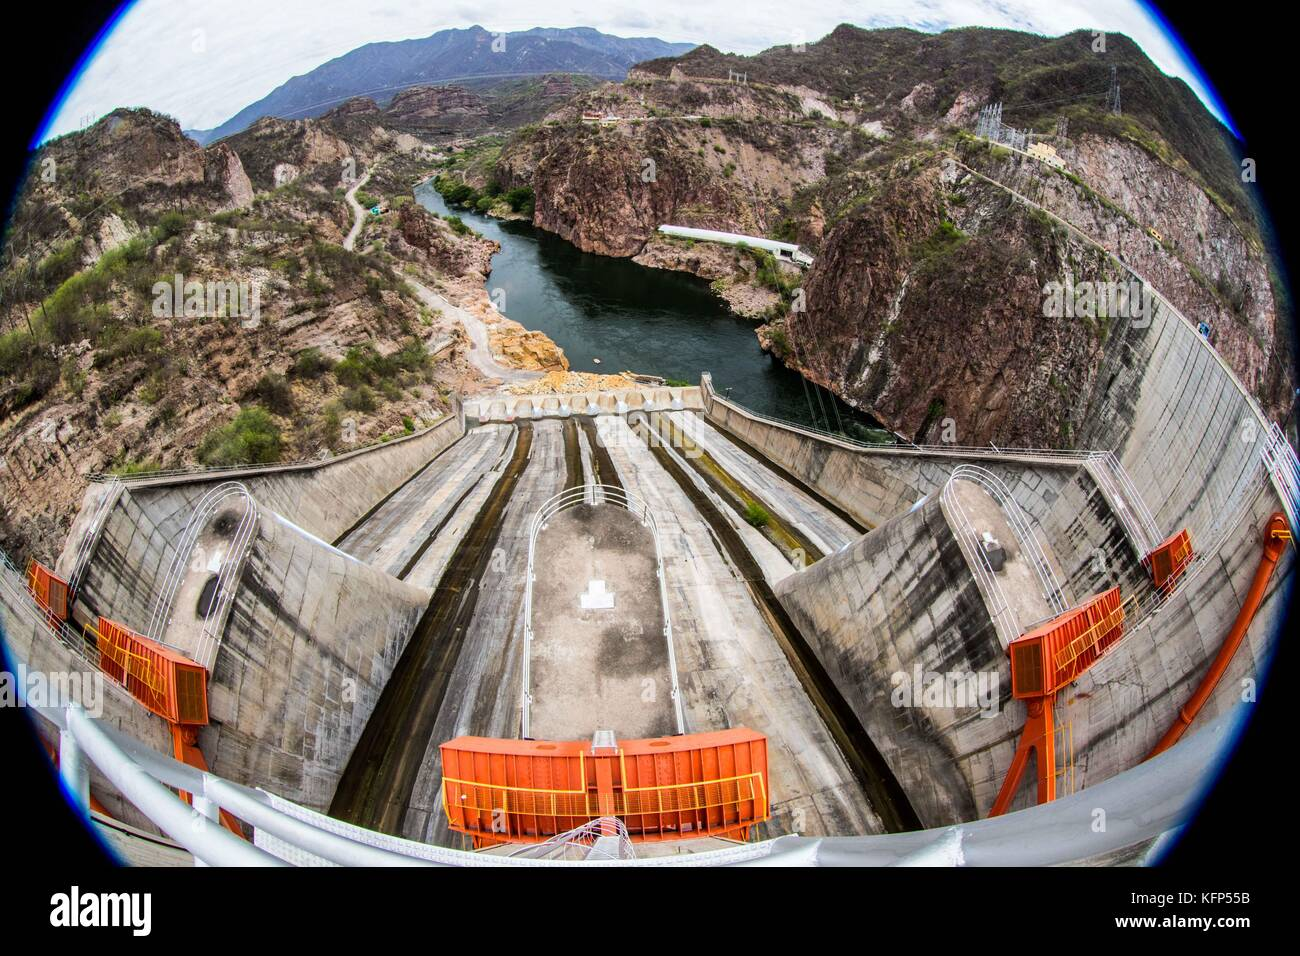 DAM. Spillway of the dam, the Novillo, in the municipality of Soyopa. Here are hydroelectric facilities operated - Stock Image